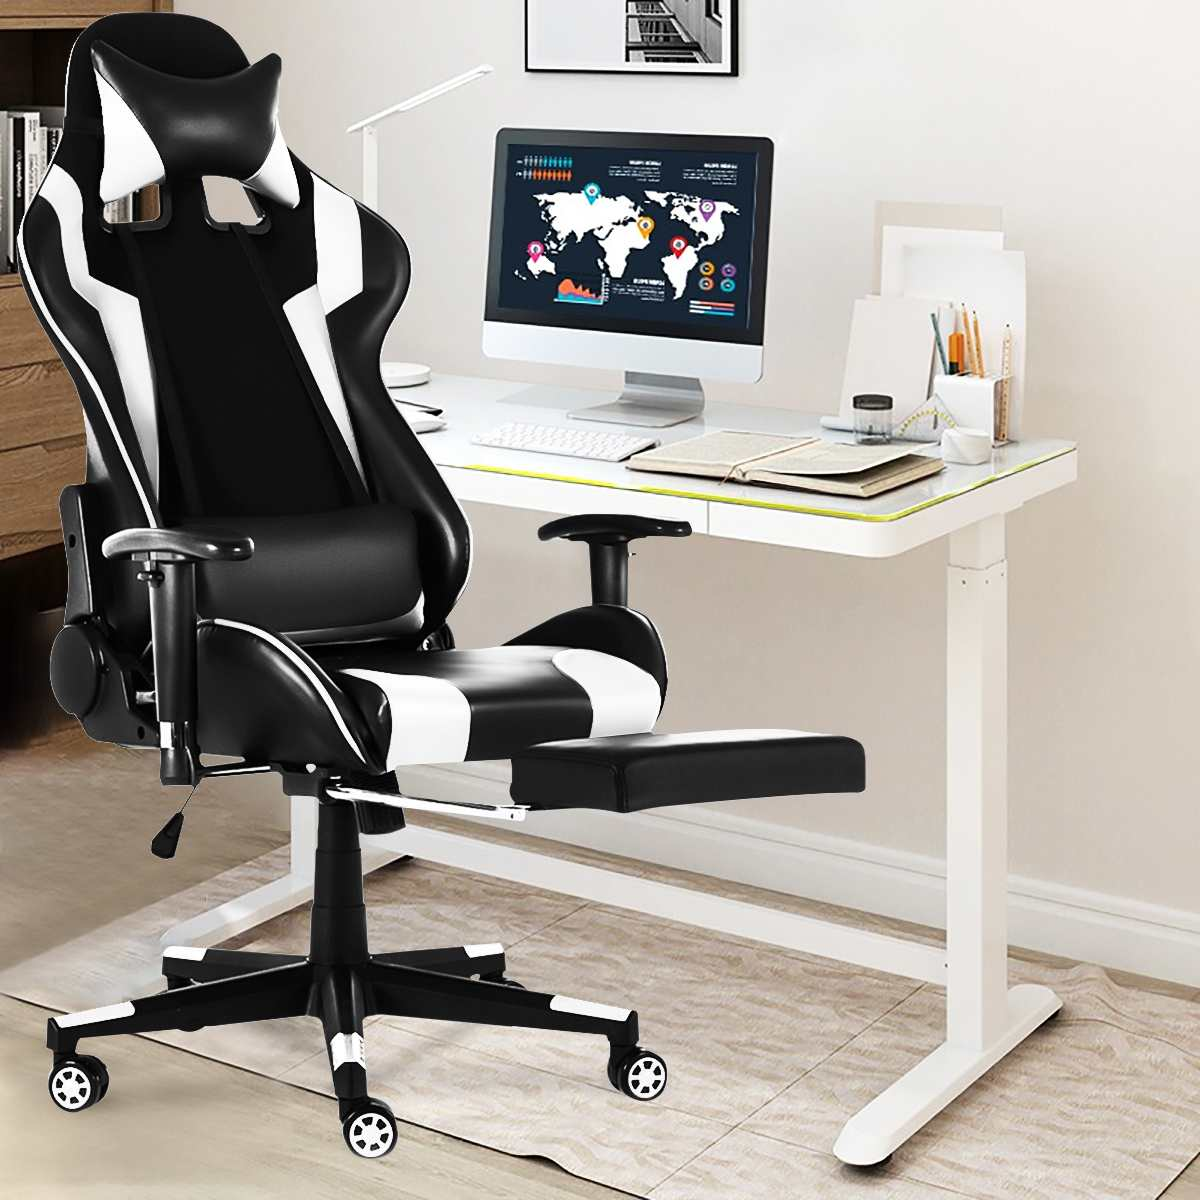 H2730e722ad7442f084d344656f778baeR - WCG Gaming Chair Computer Armchair Office Chairs Home Swivel Massage Chair Lifting Adjustable Desk Chair Lying Recliner Chair